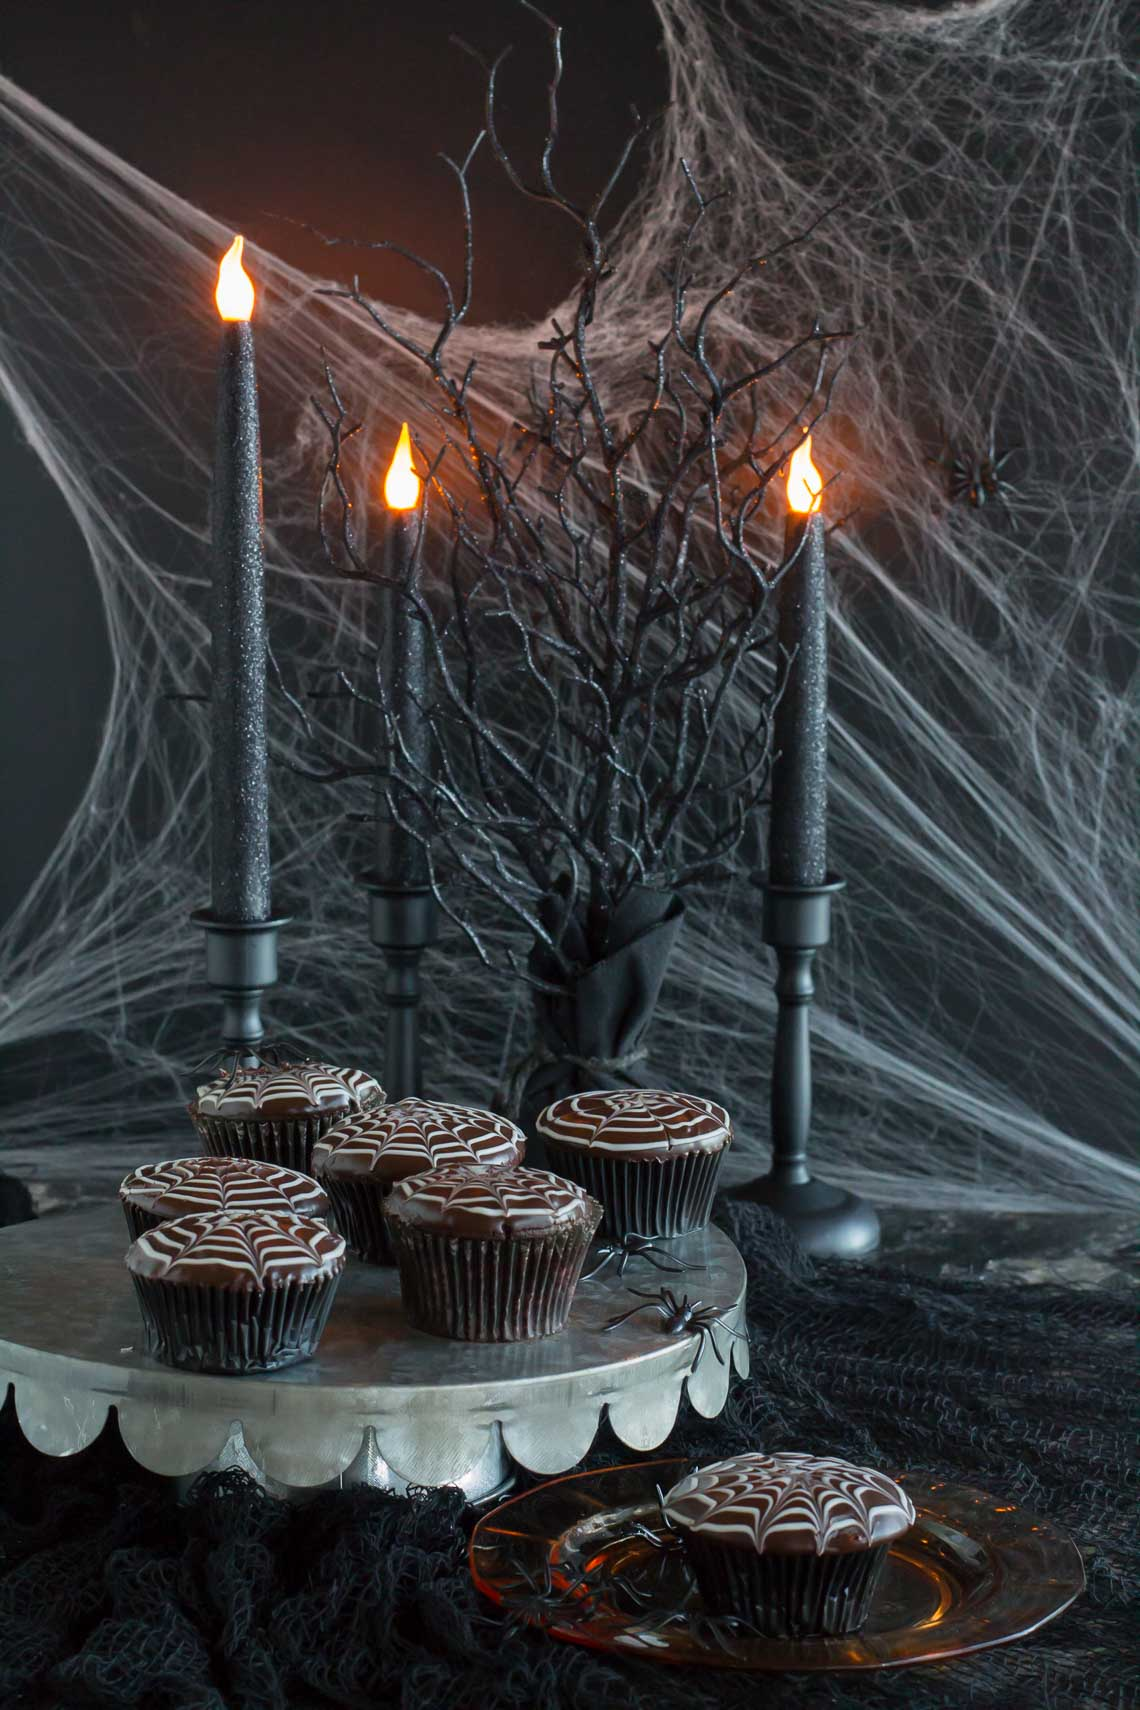 The perfect Halloween setting- black lit candles in black candelabras surrounded by spiderwebs and black tree branches- with a plate of spiderweb decorated chocolate cupcakes to chase away the goblins.